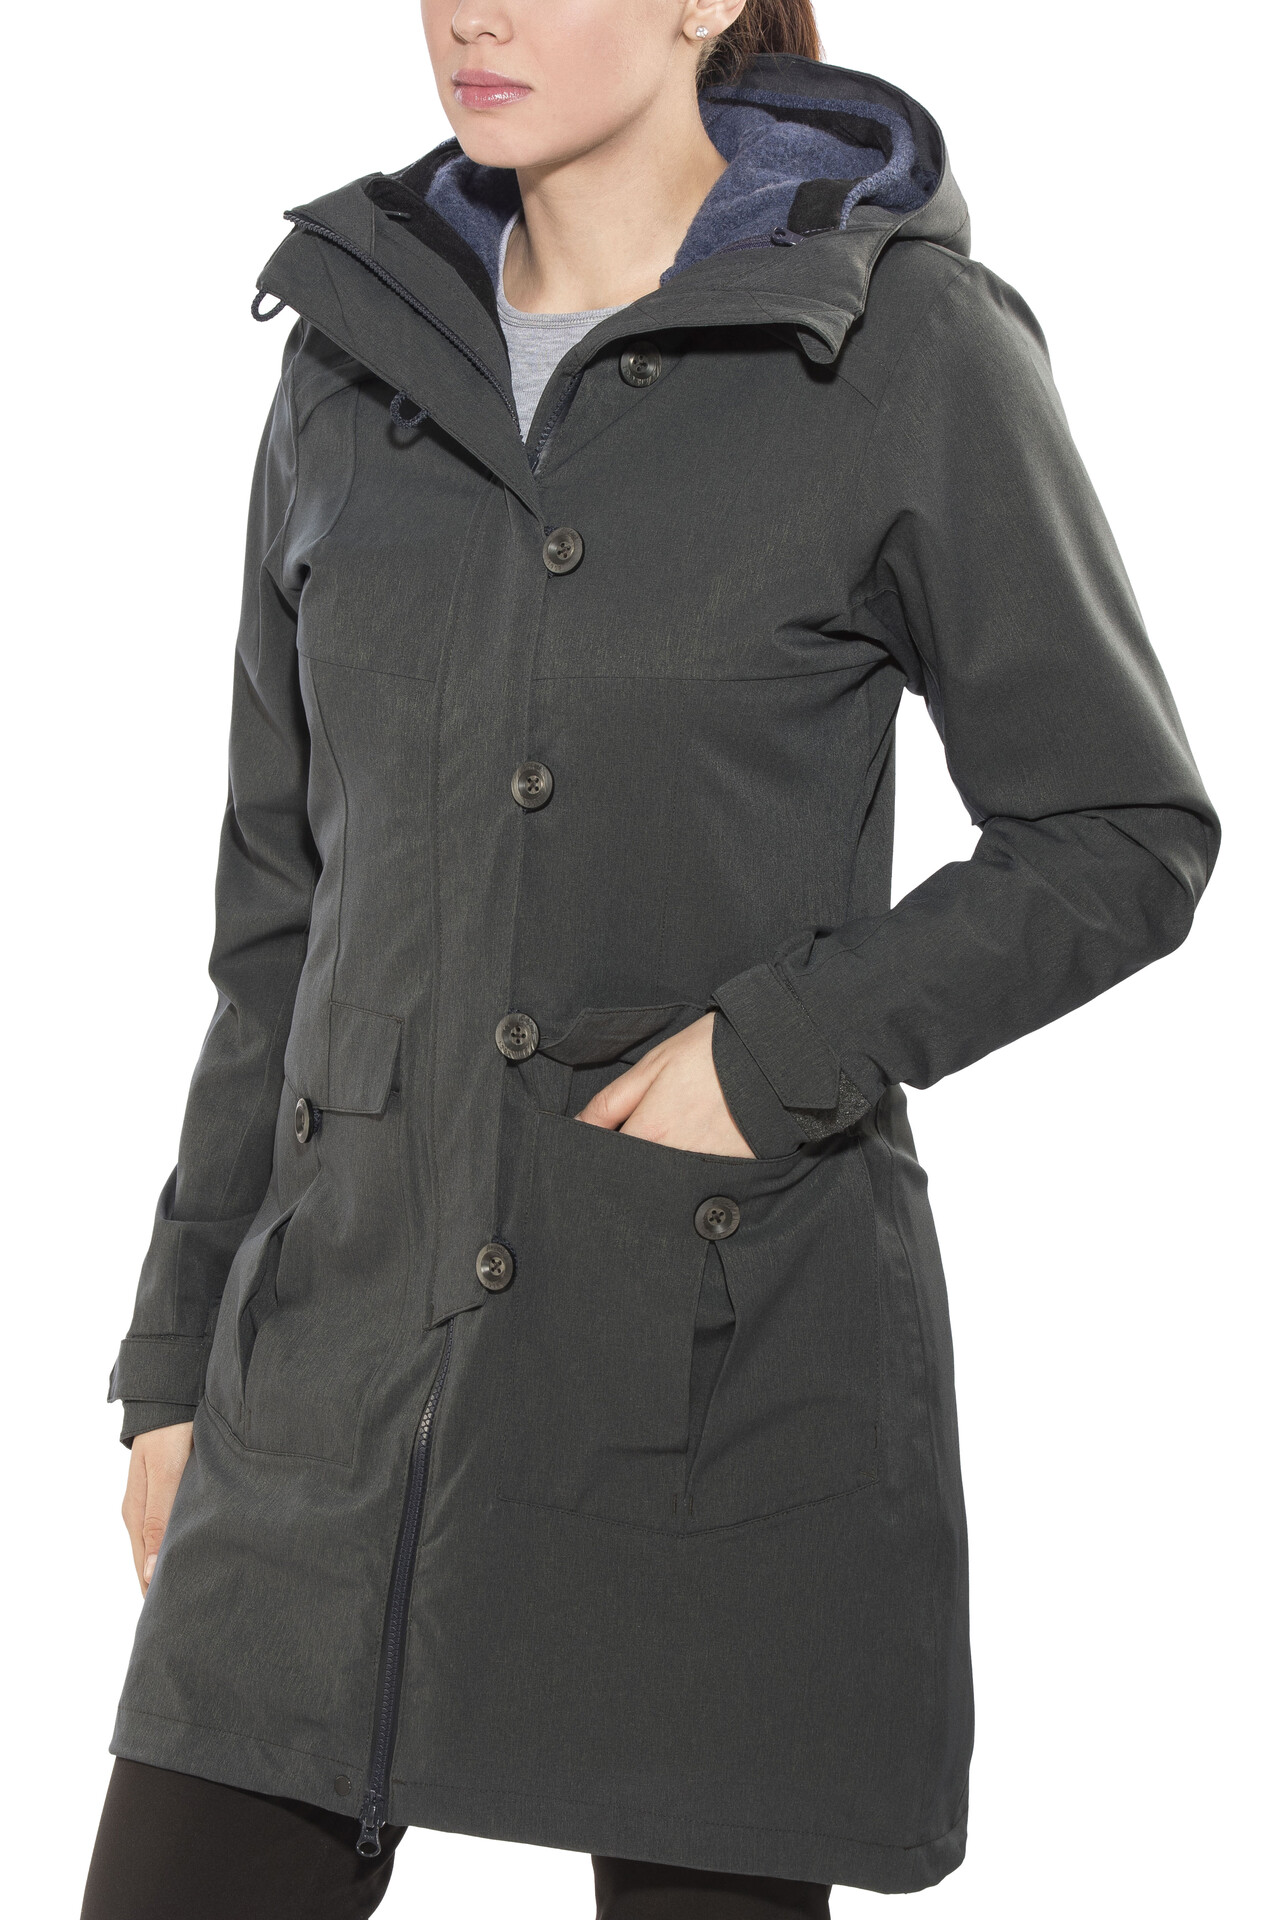 Bergans Bjerke 3in1 Jas Dames, outer:solid charcoalinner:night blue